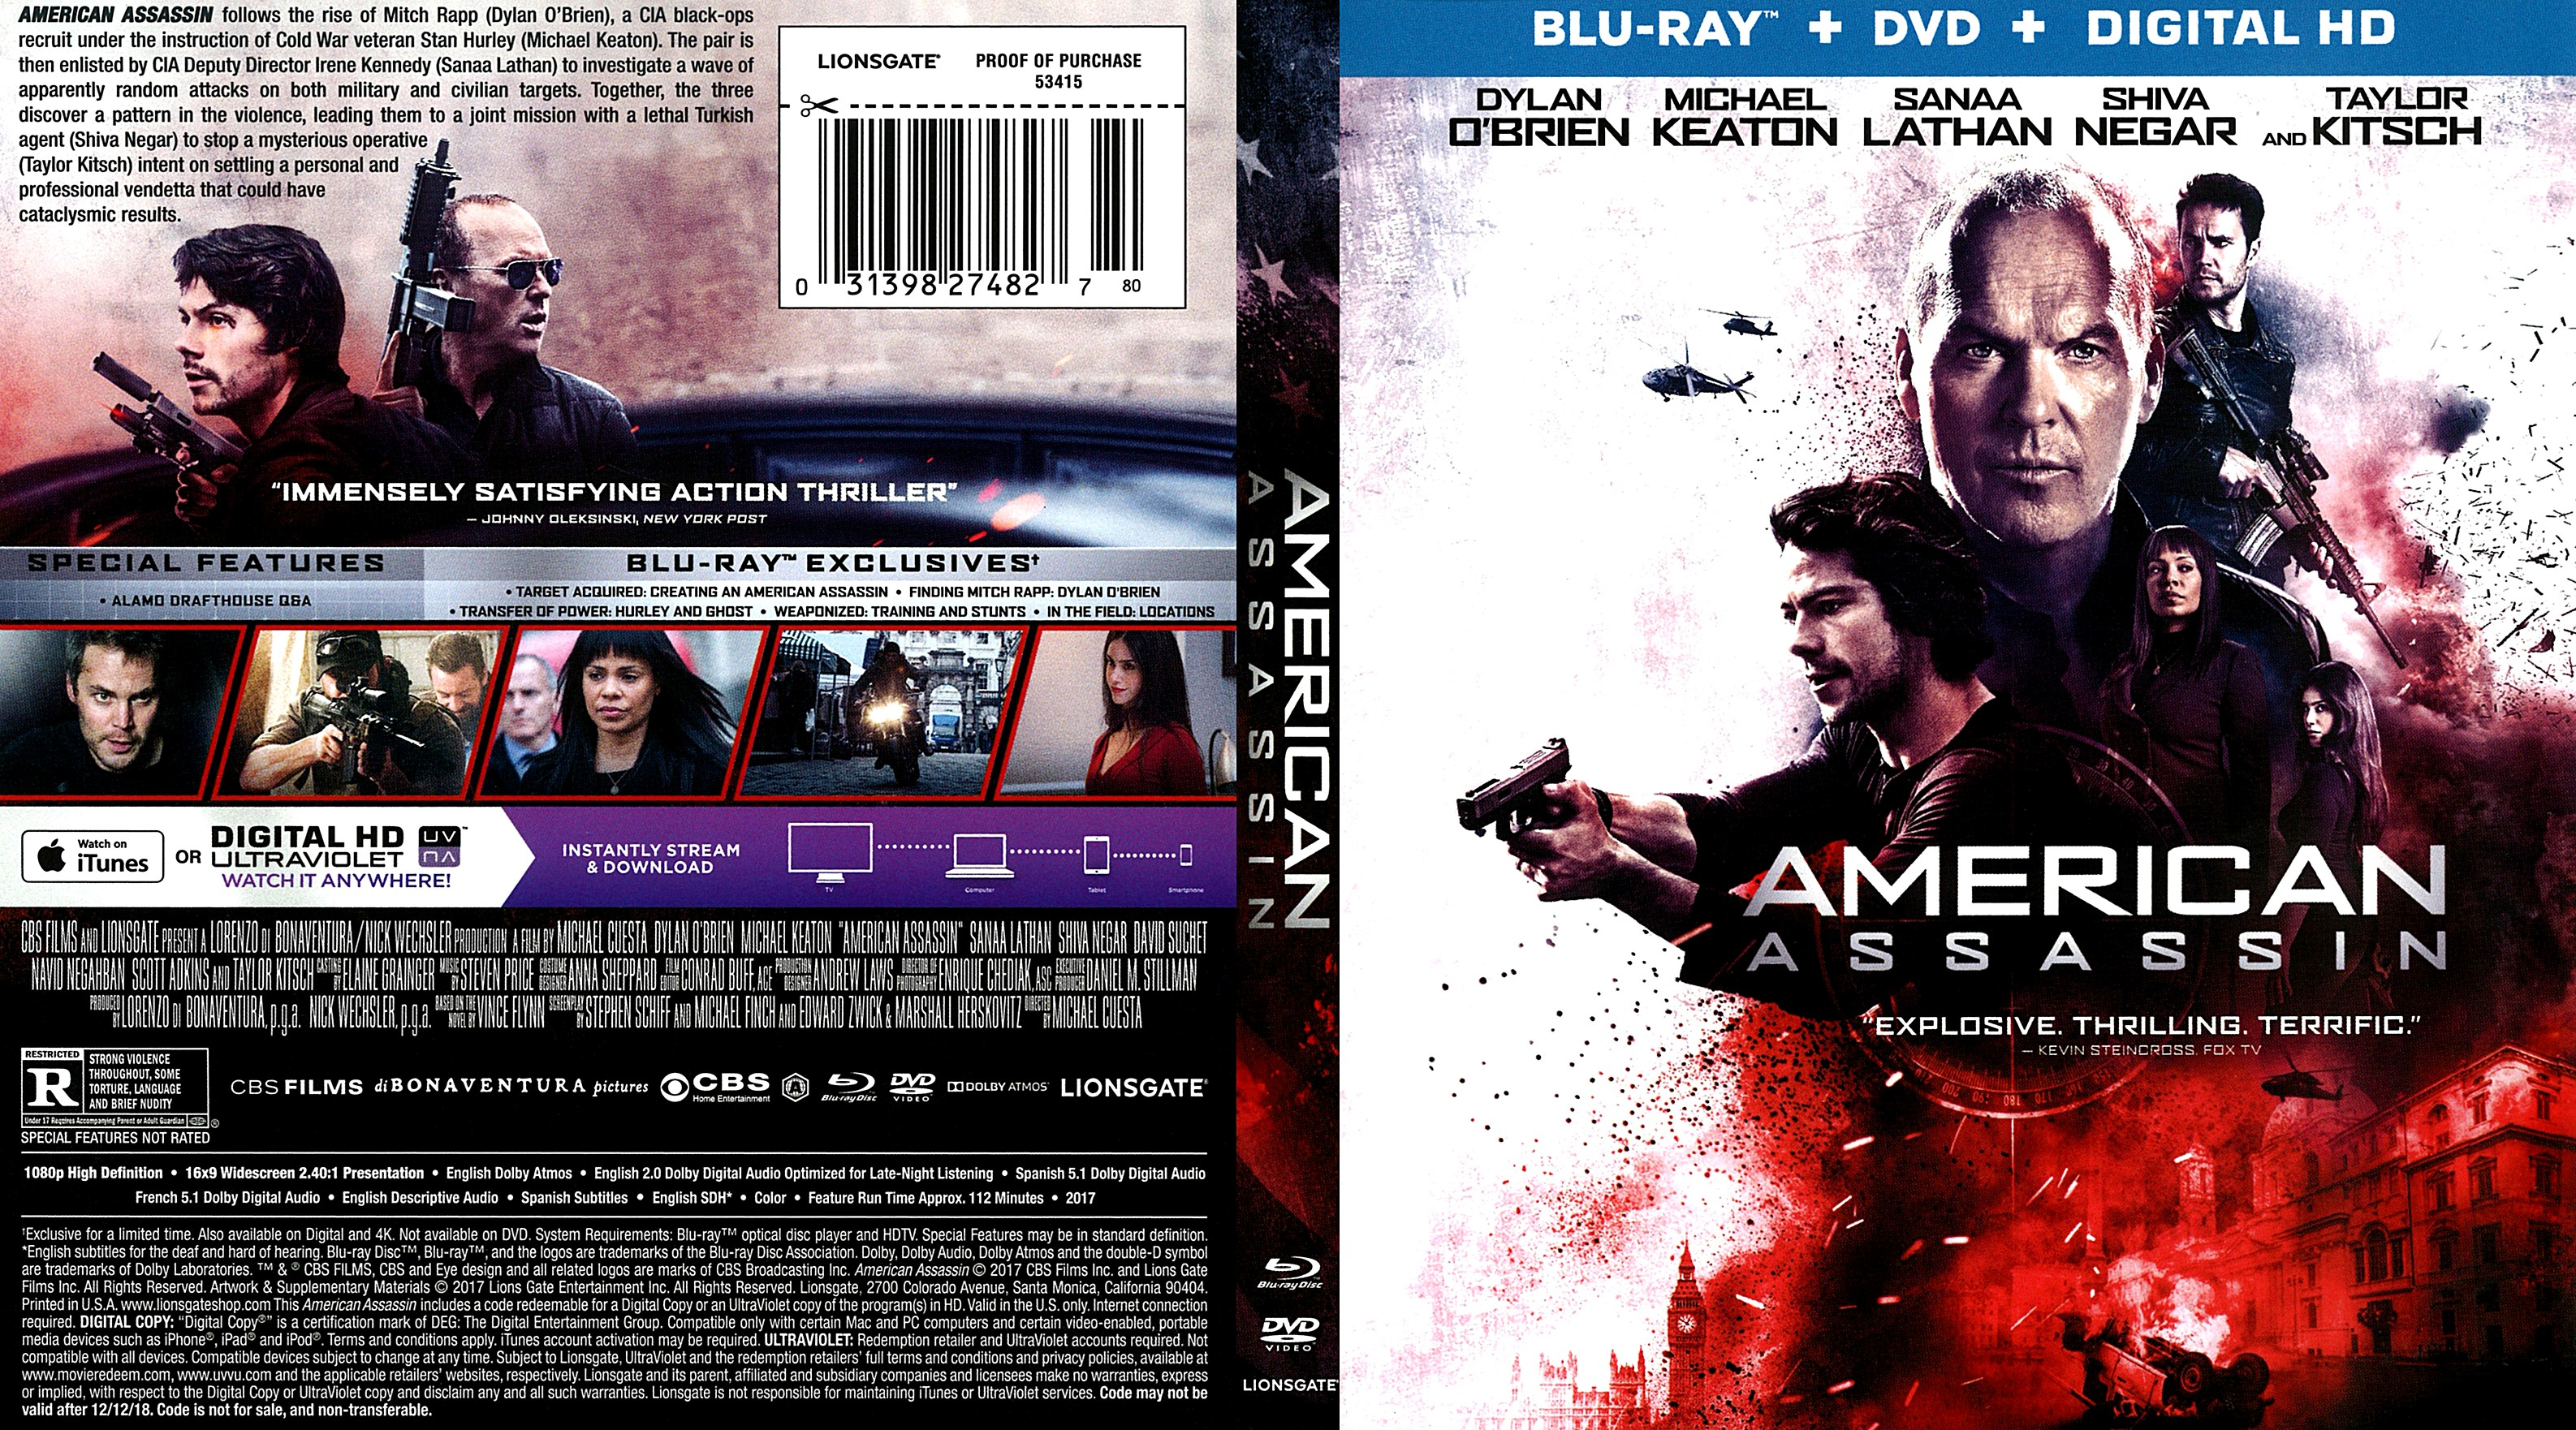 american assassin full movie hd download